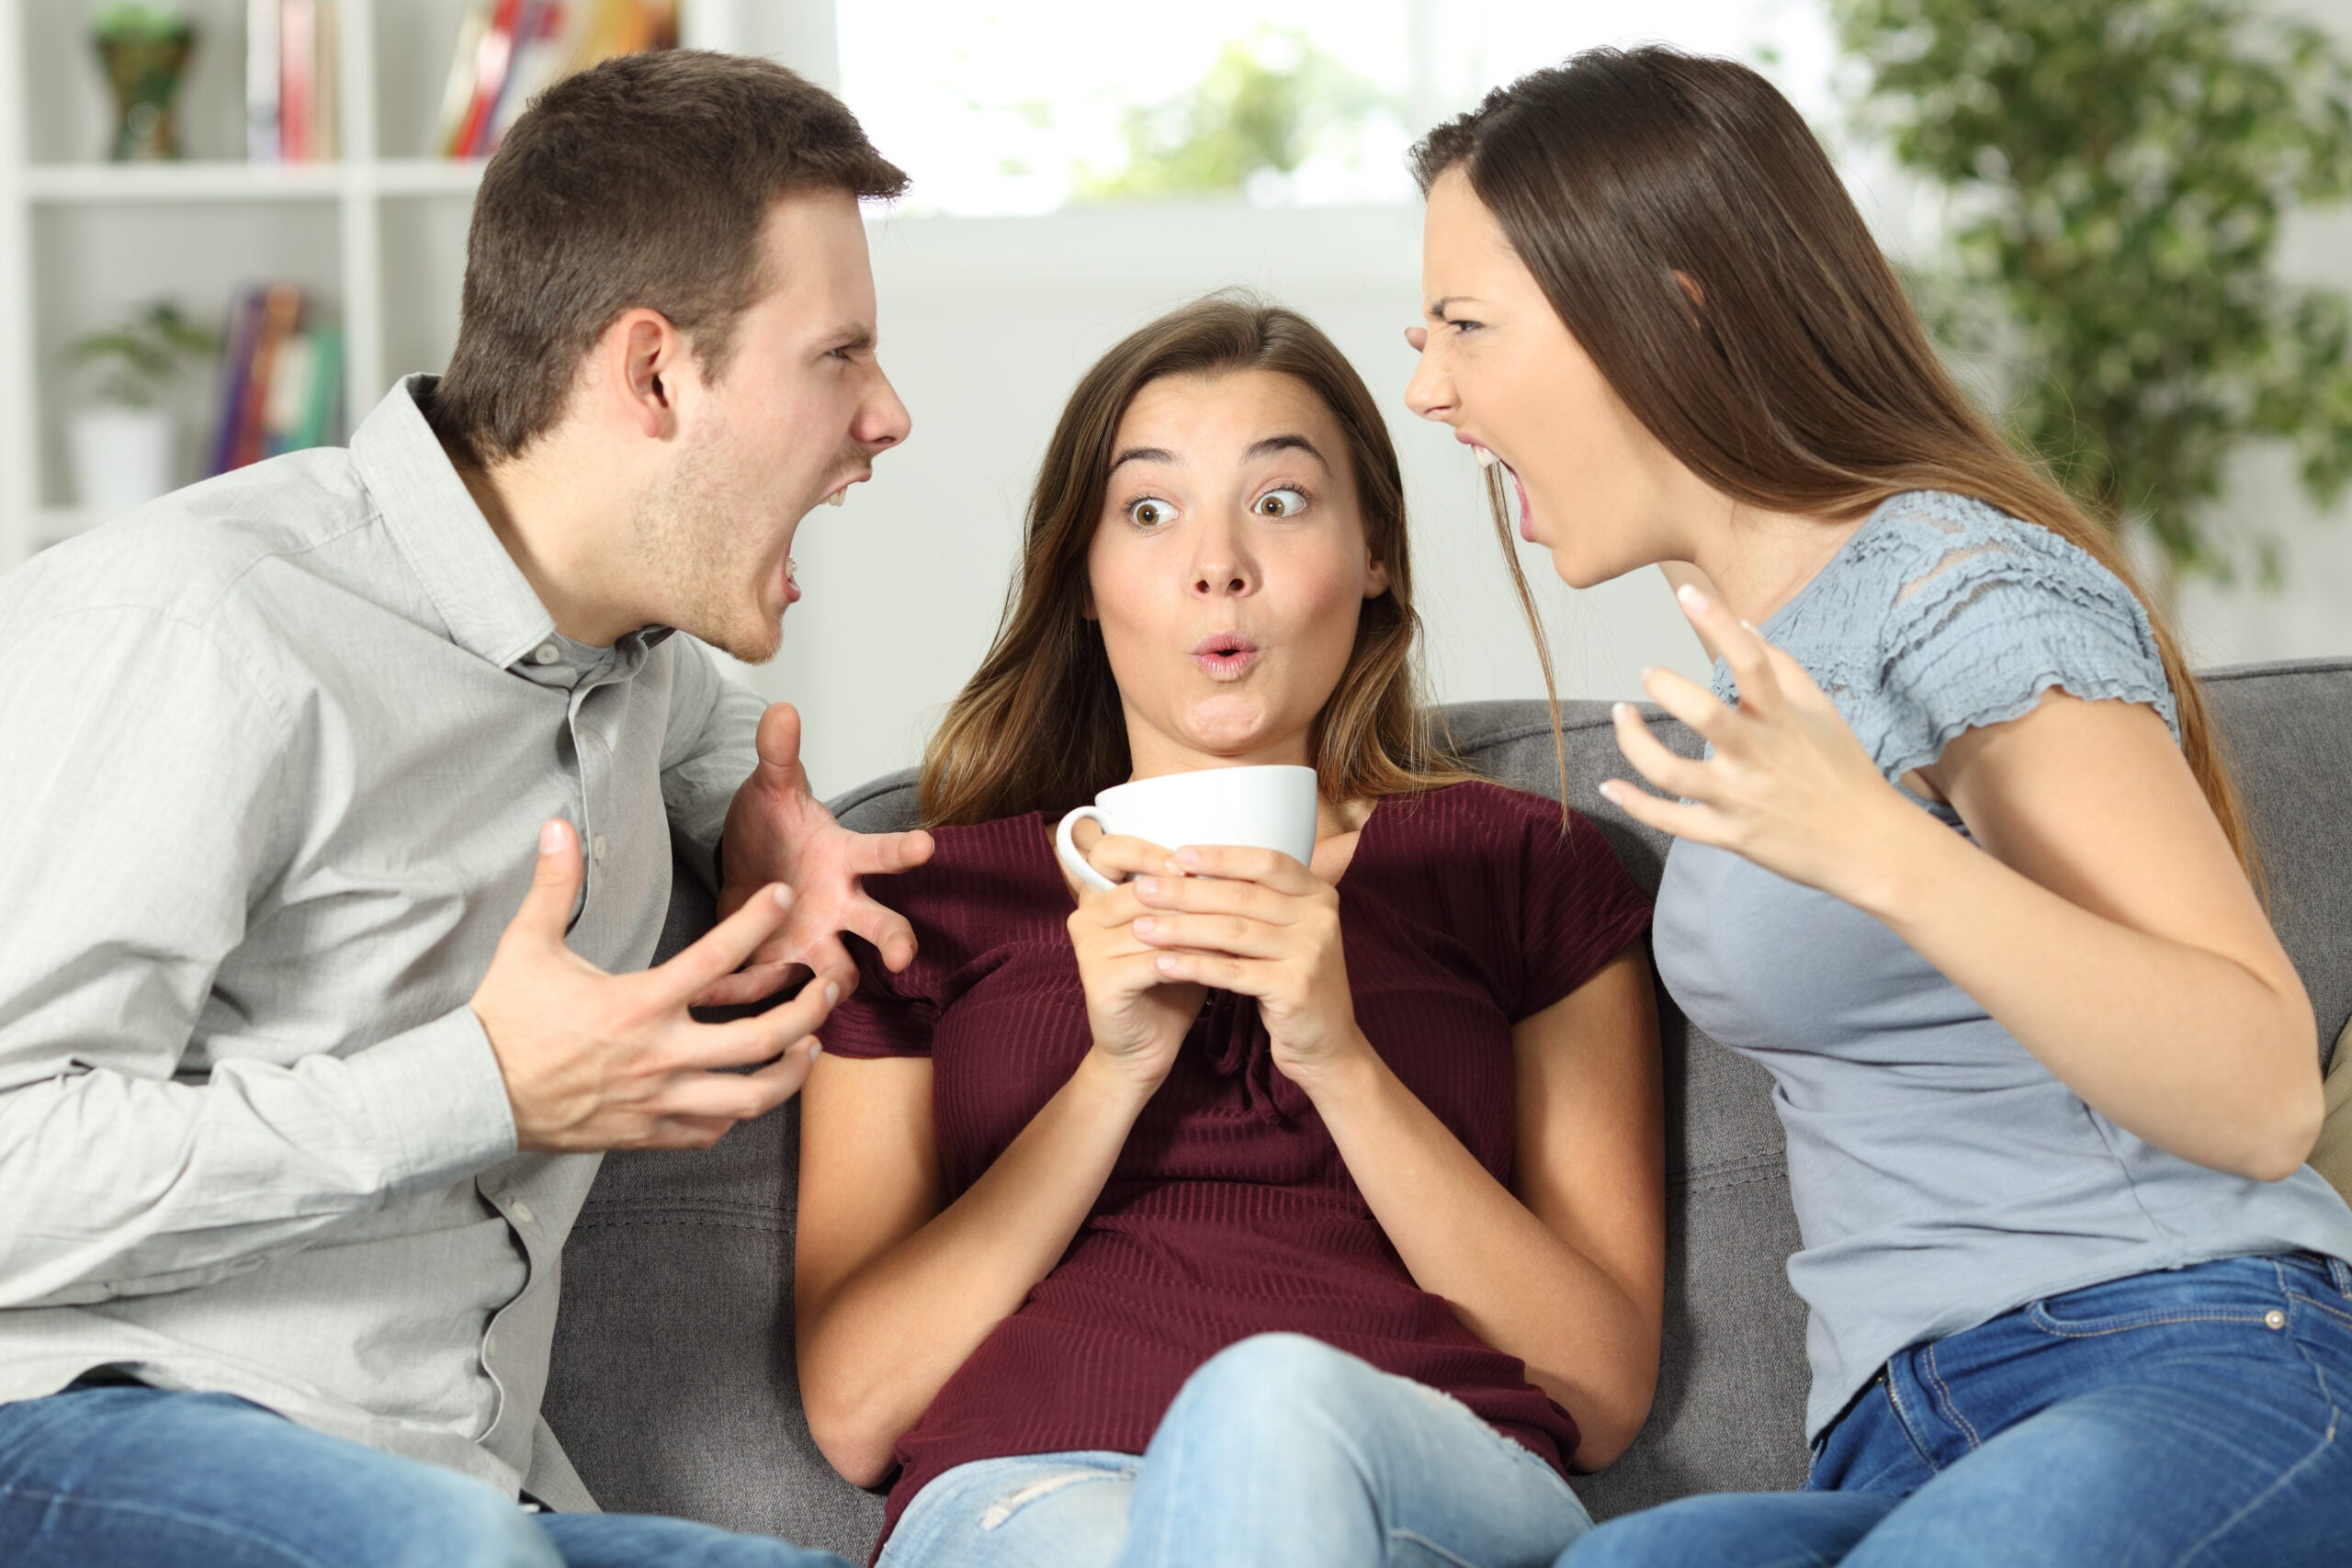 two people arguing with one person sitting awkwardly between them